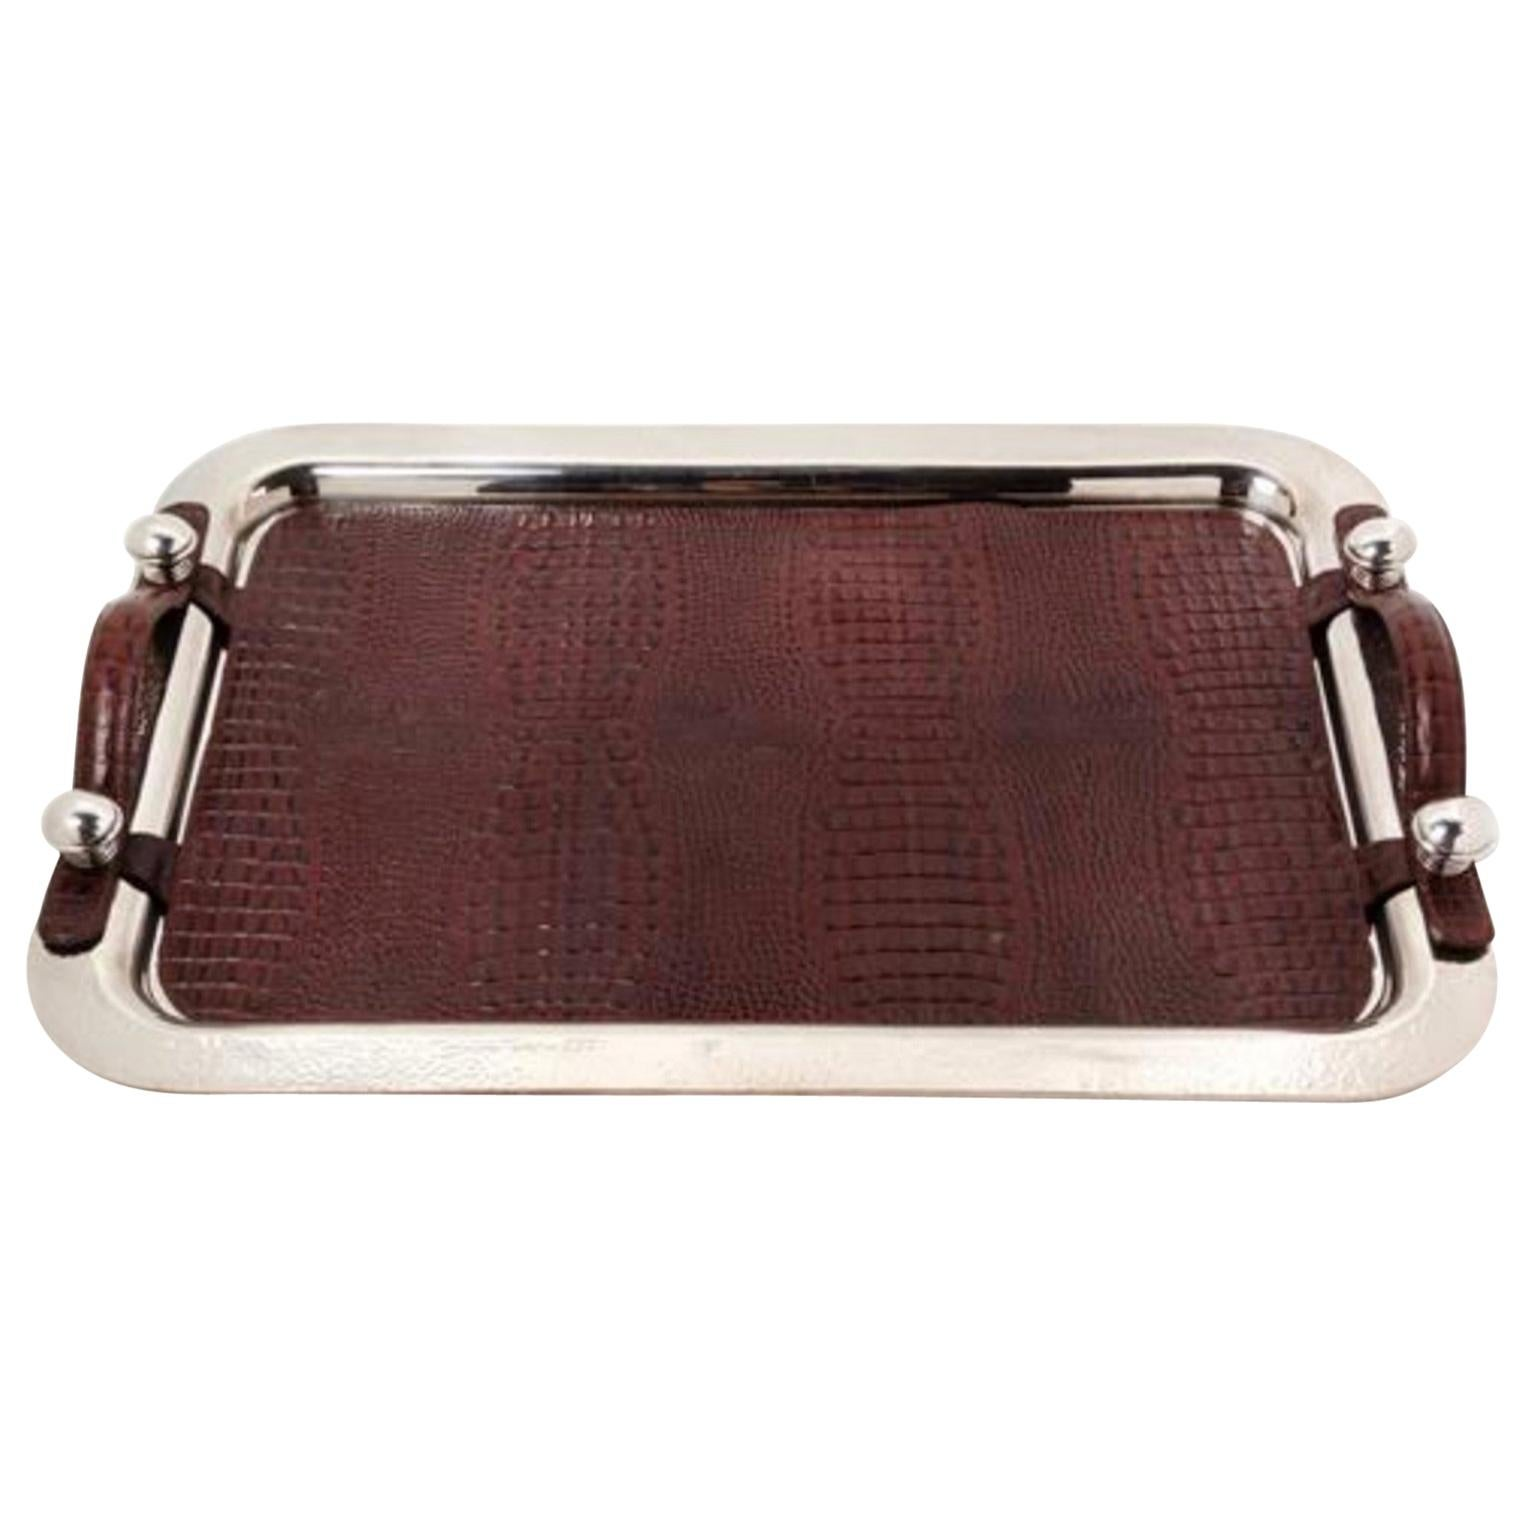 Argentine Silver-Plate and Leather Serving Tray, Plata Lappas, Buenos Aires